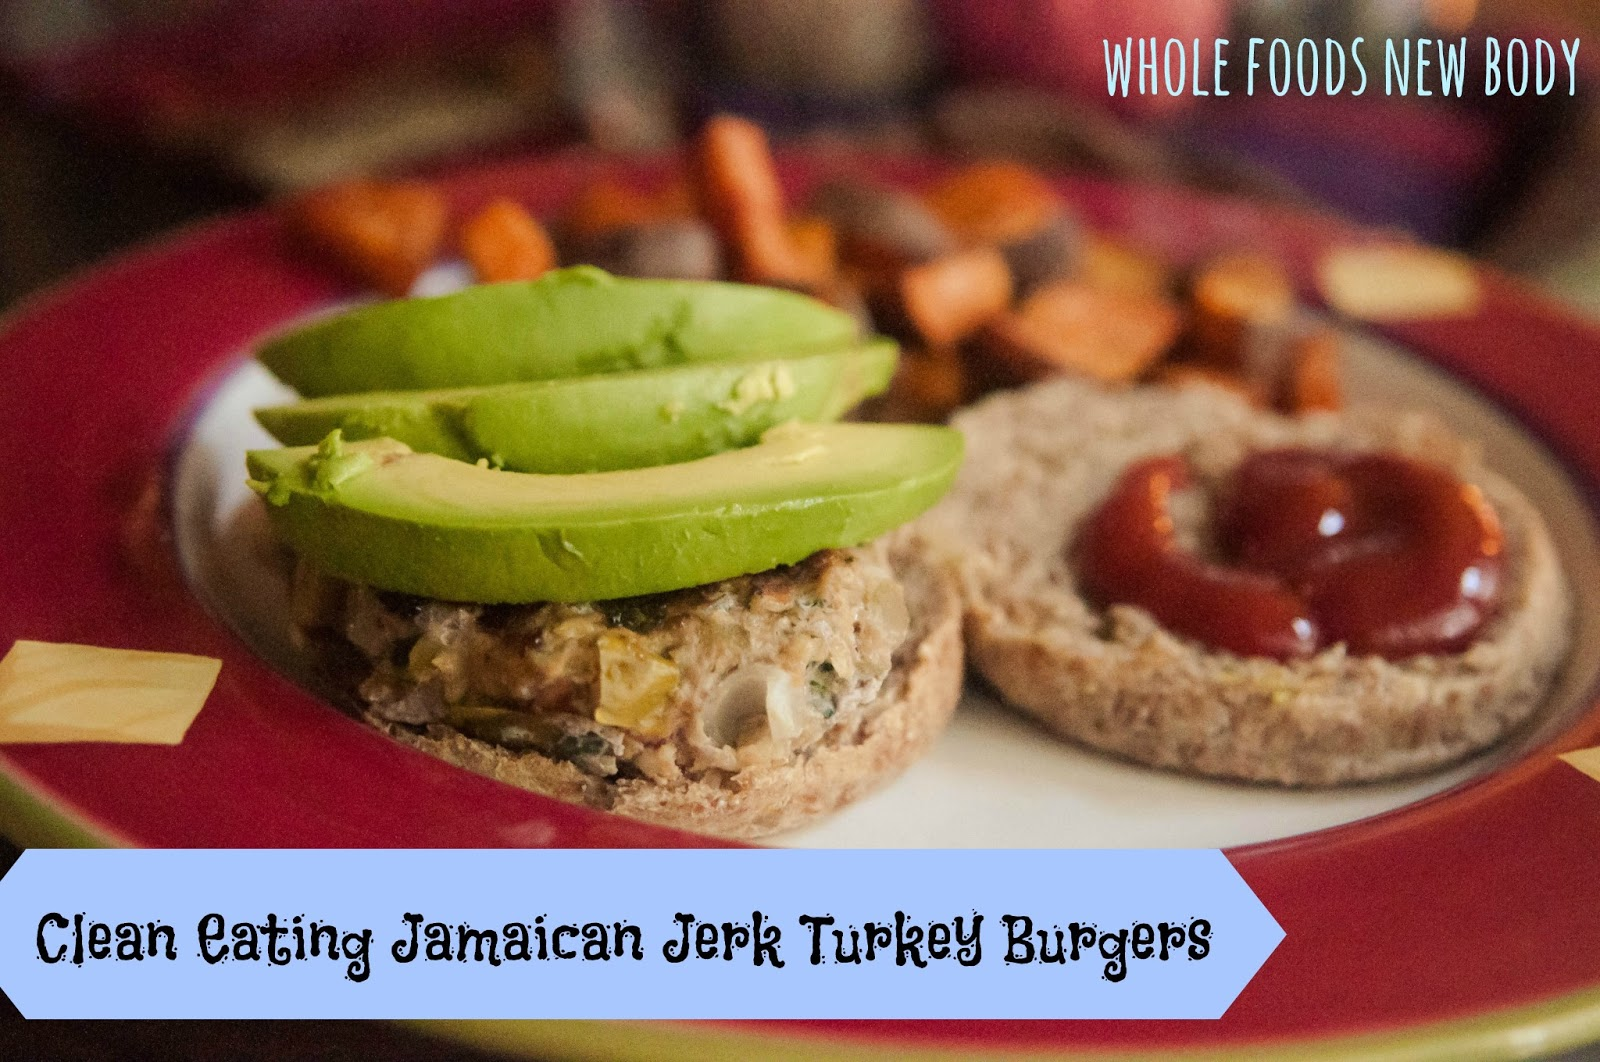 Whole Foods...New Body!: {Clean Eating Jamaican Jerk Turkey Burgers}